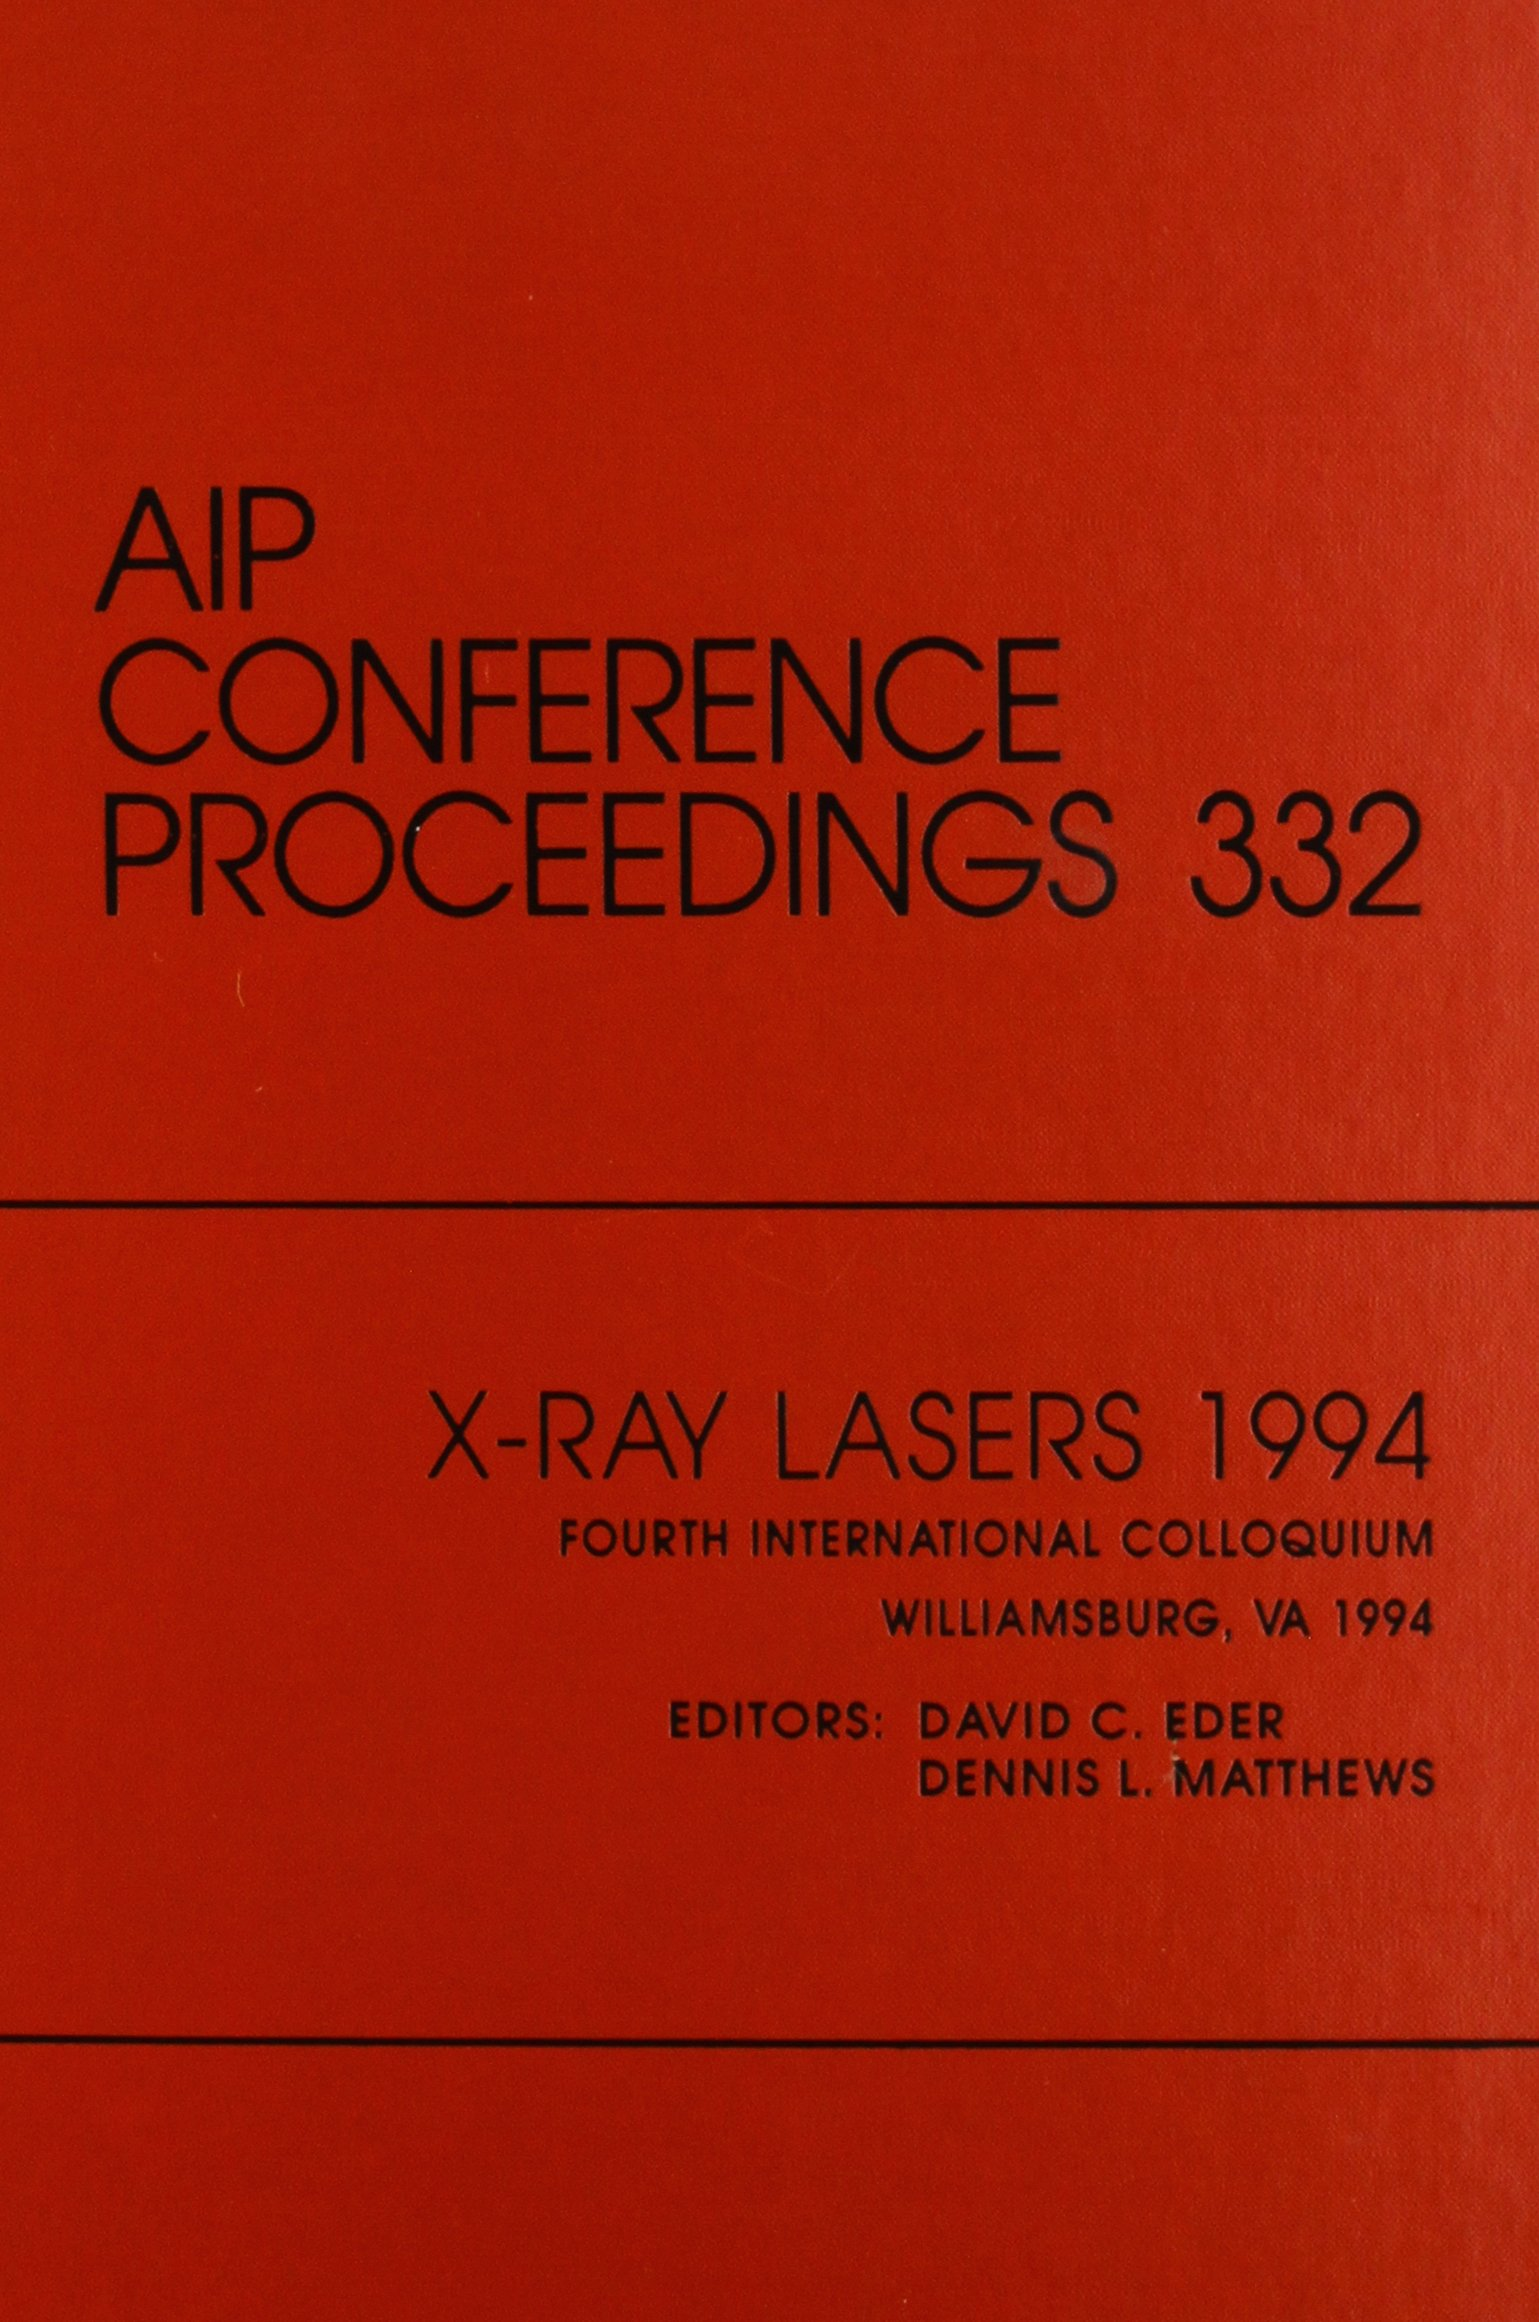 X-Ray Lasers 1994 Fourth International Colloquium: Proceedings of the Conference held in Williamsburg, VA, May 1994 (AIP Conference Proceedings) PDF